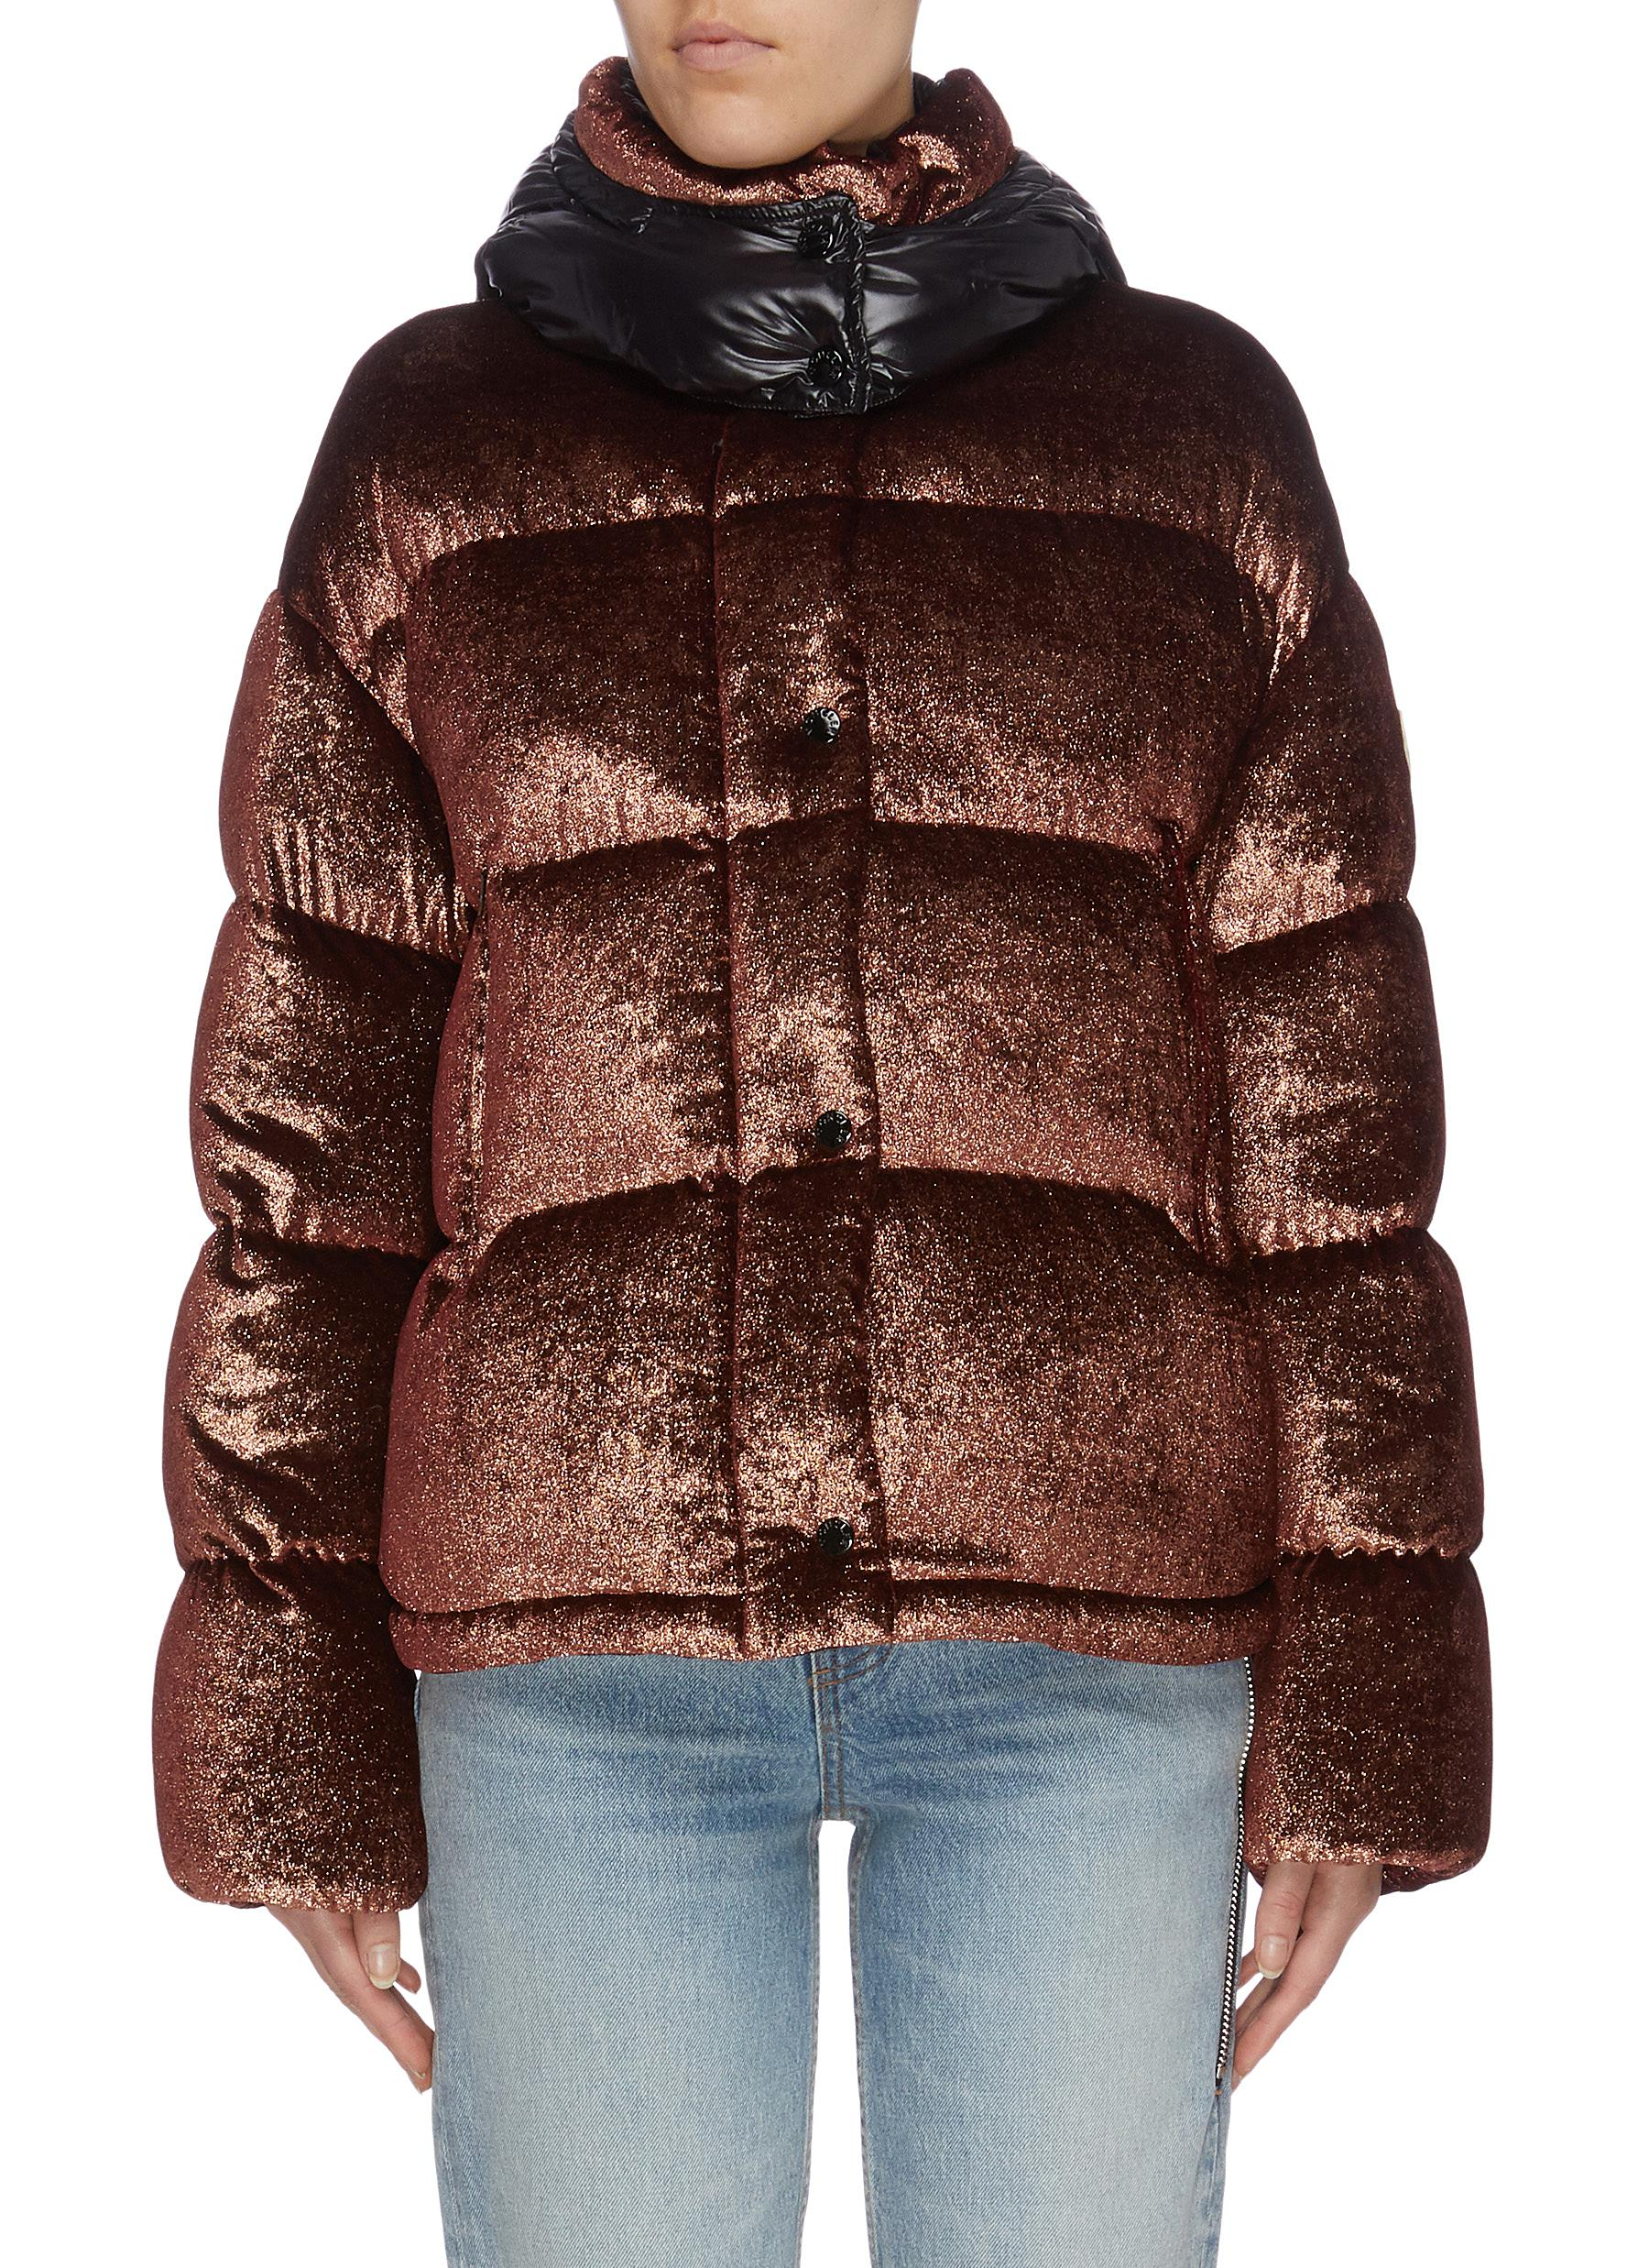 Buy Moncler Jackets 'Caille' detachable hood down puffer jacket